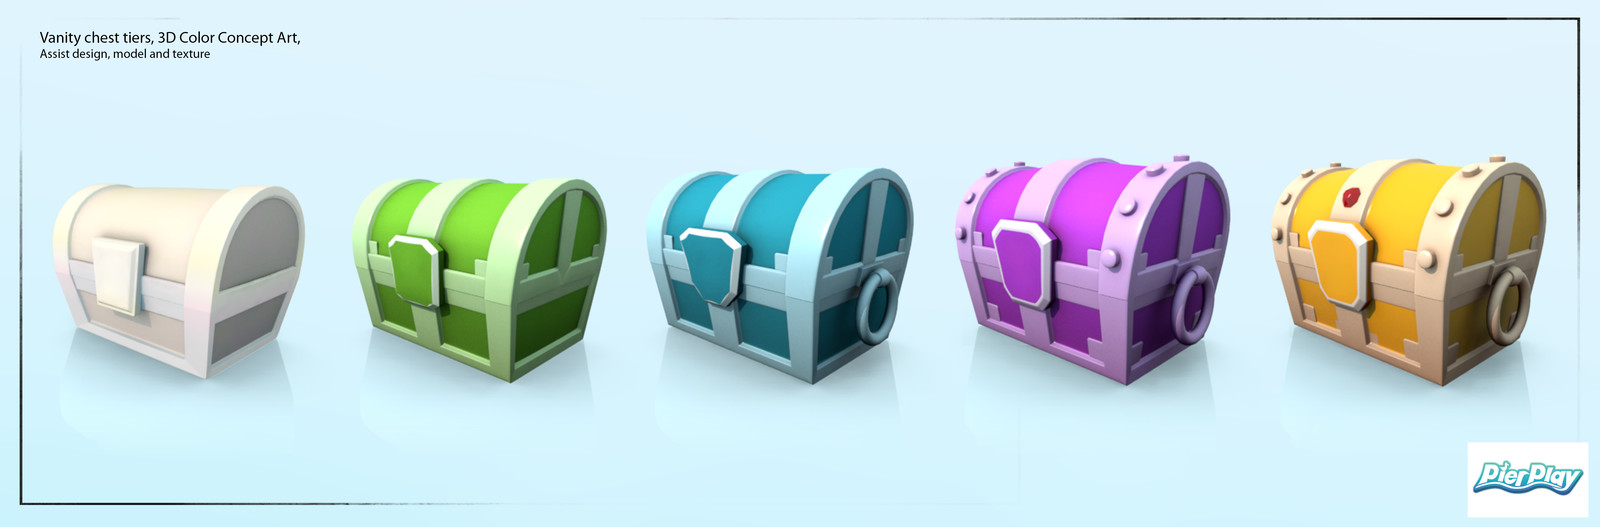 Designed Color pallets, model and texture. Assisted in the design of treasure chest.